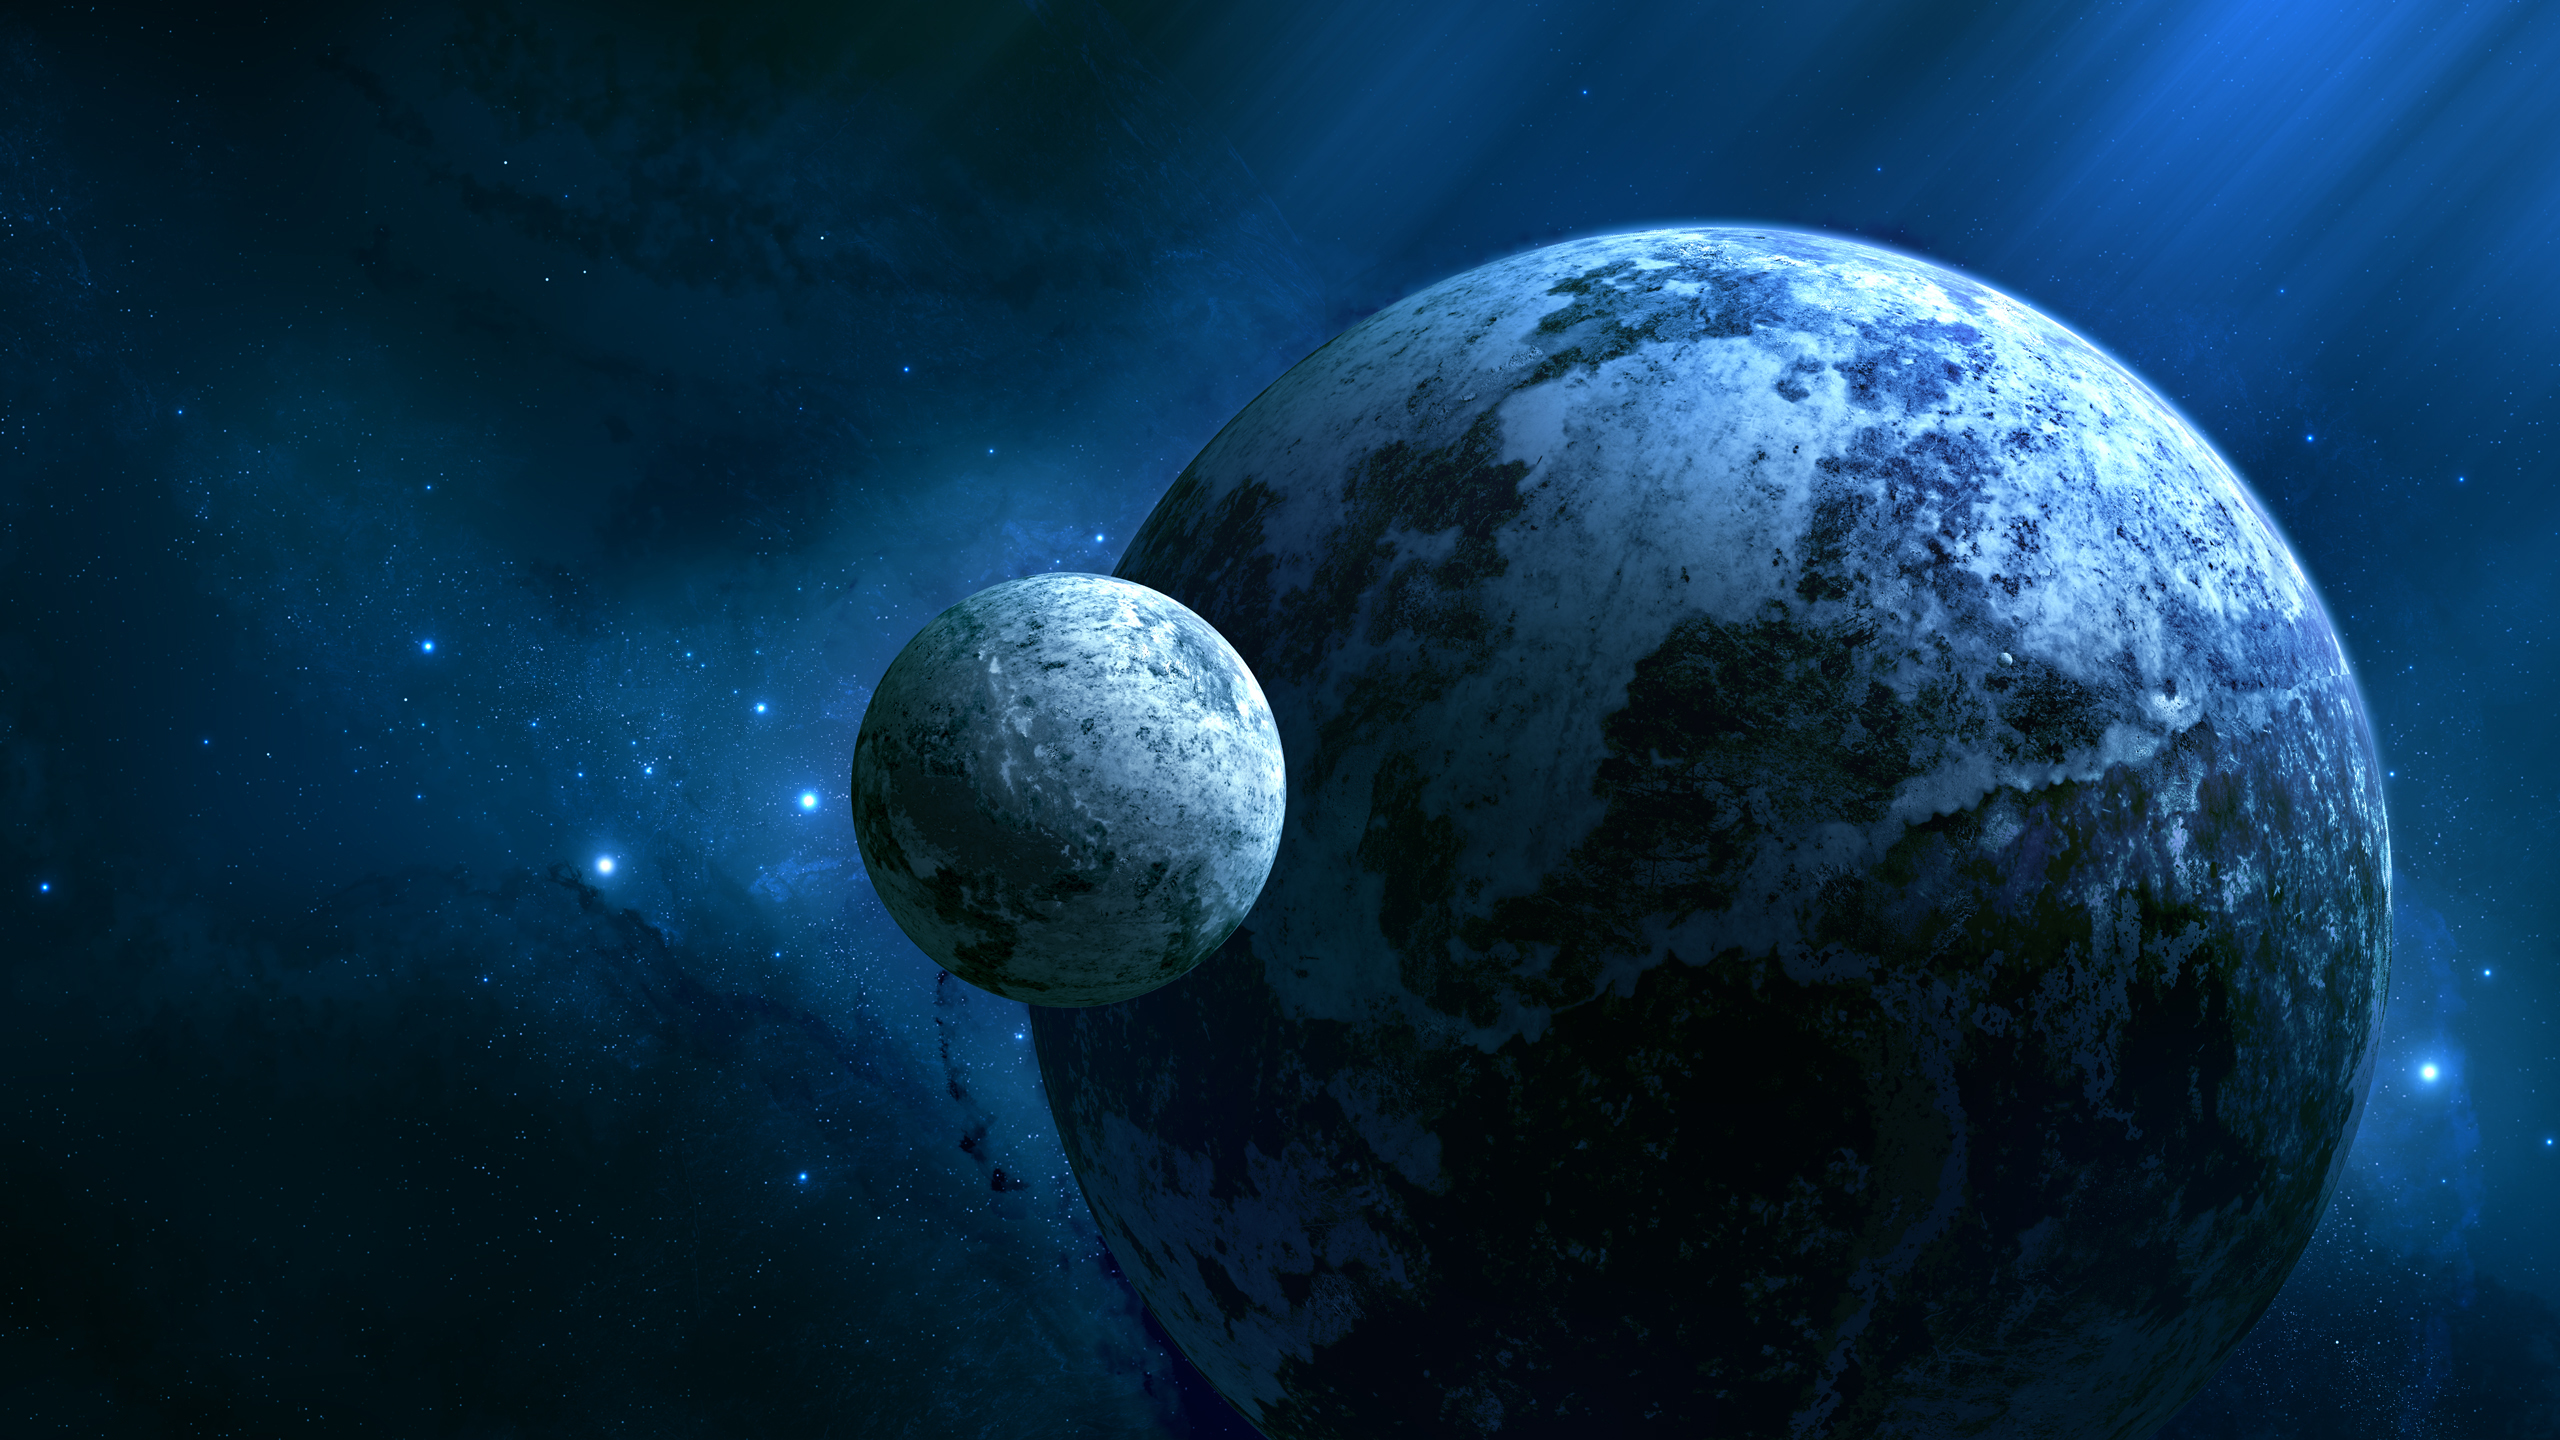 earth and moon background wallpaper | 2560x1440 | #34468